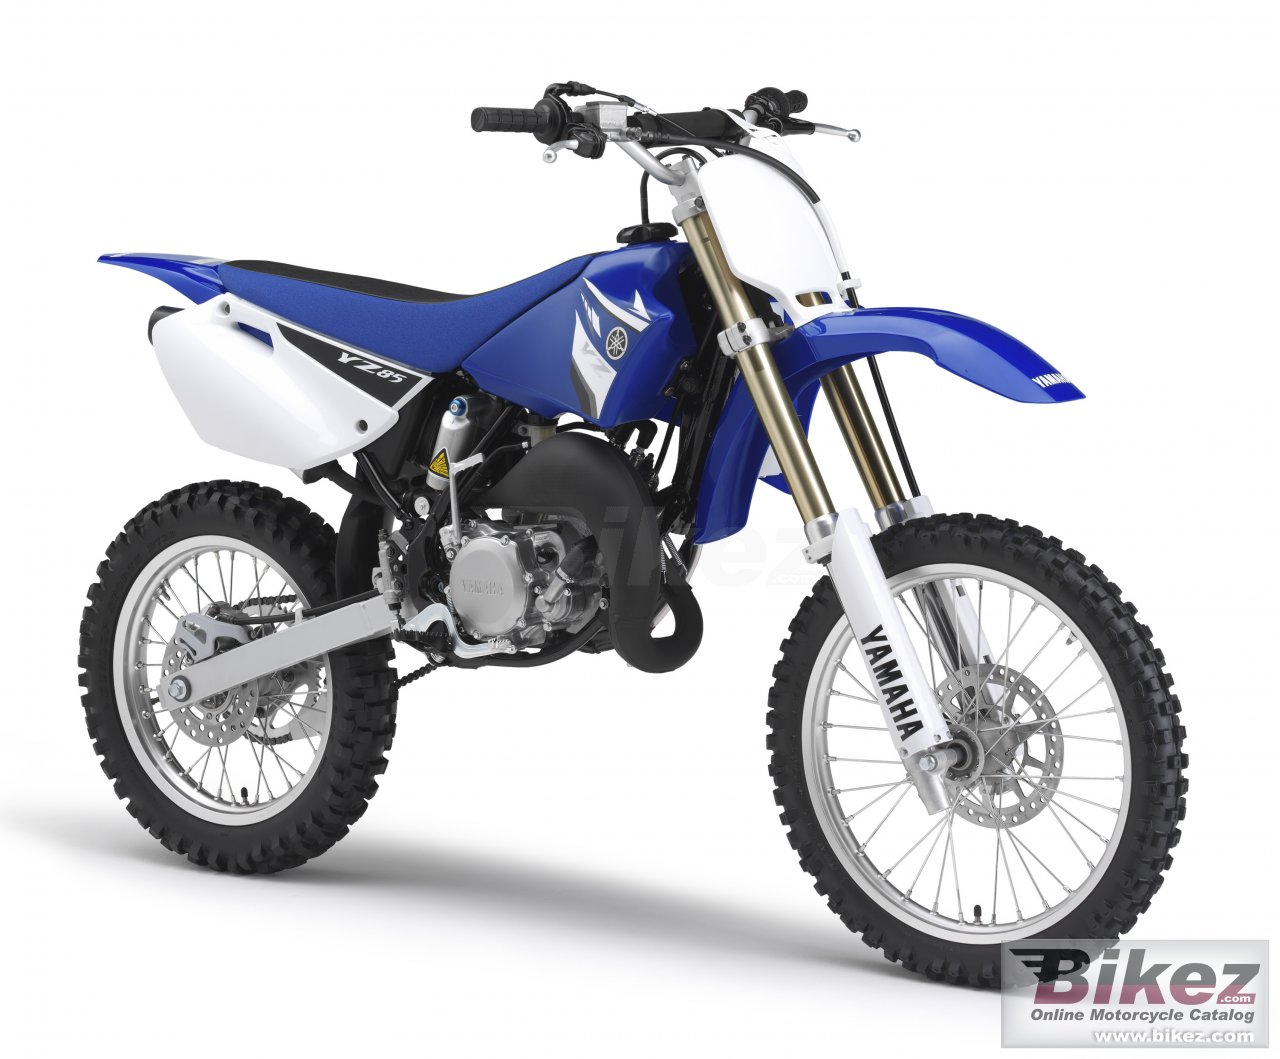 Big Yamaha yz85-lw picture and wallpaper from Bikez.com